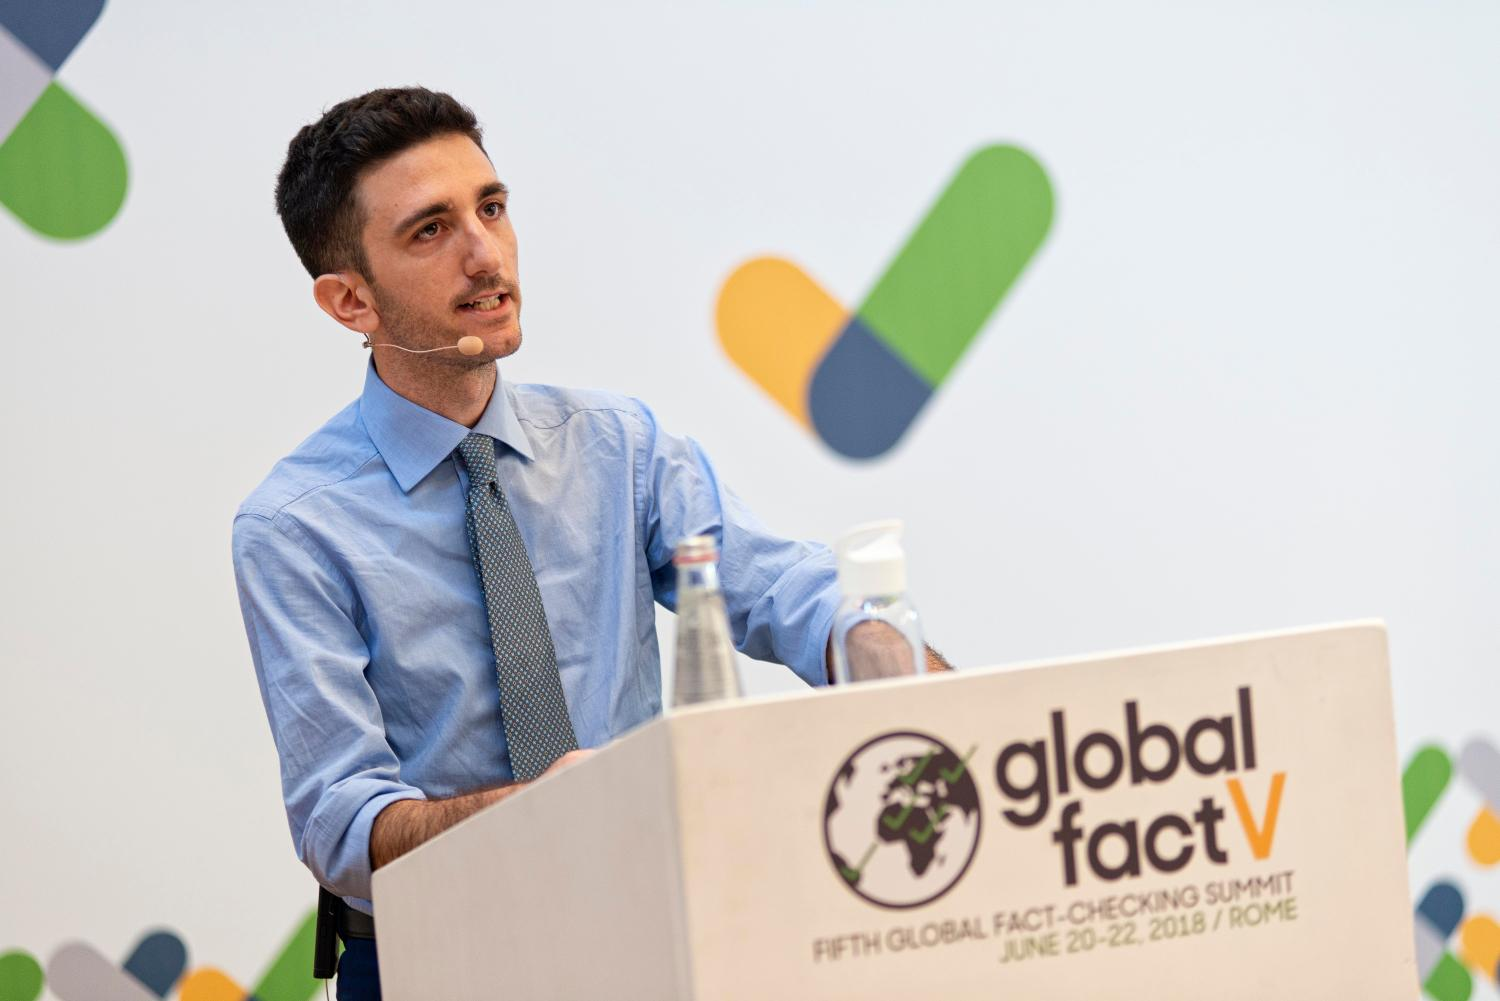 A reflection on how fact checking has changed since 2015, rising to prominence despite some flaws, and what the future holds